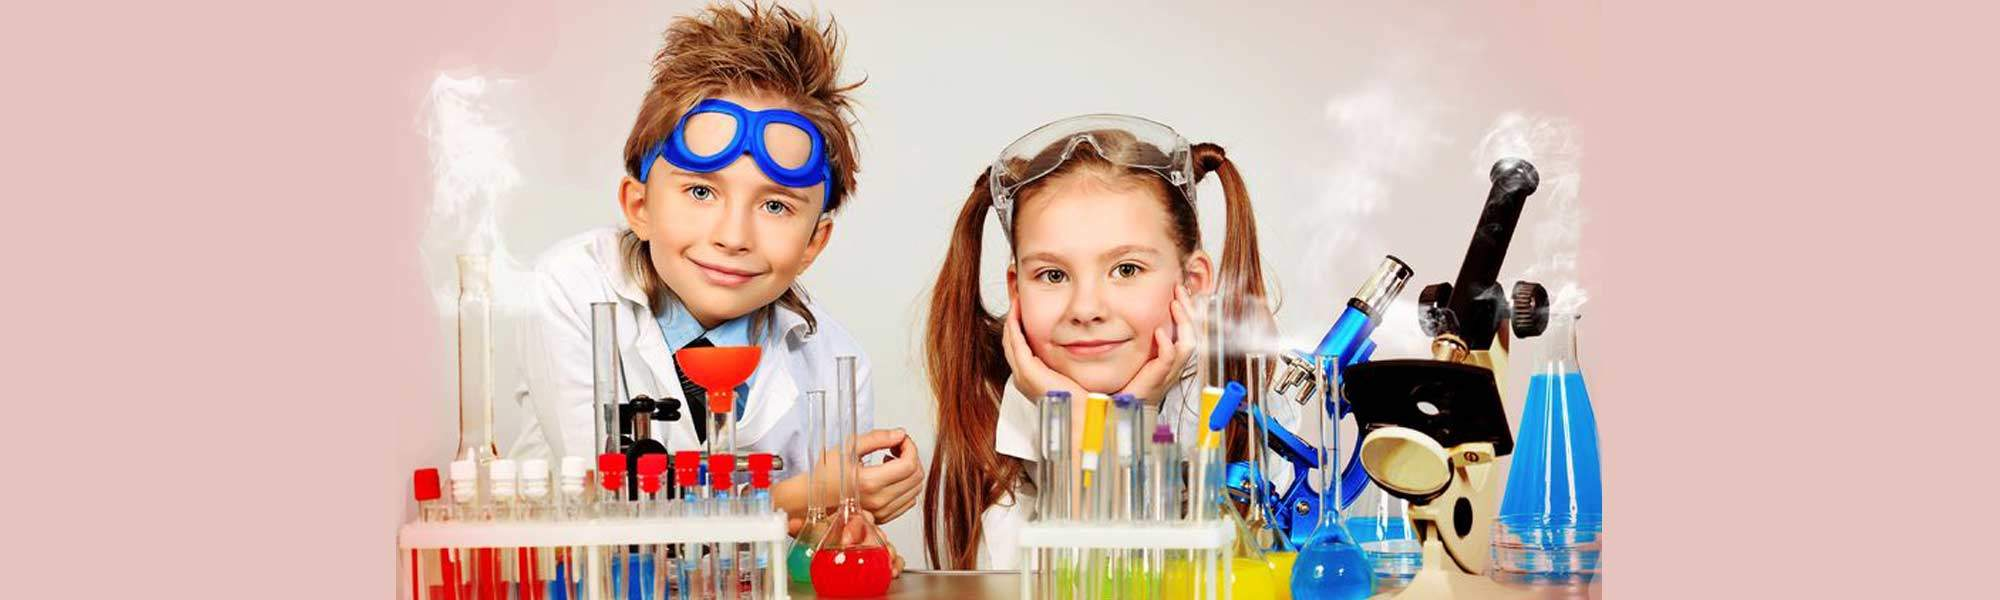 Little Bird 98% off Supercharged Science for Kids Course - Taught by a Real NASA Scientist!